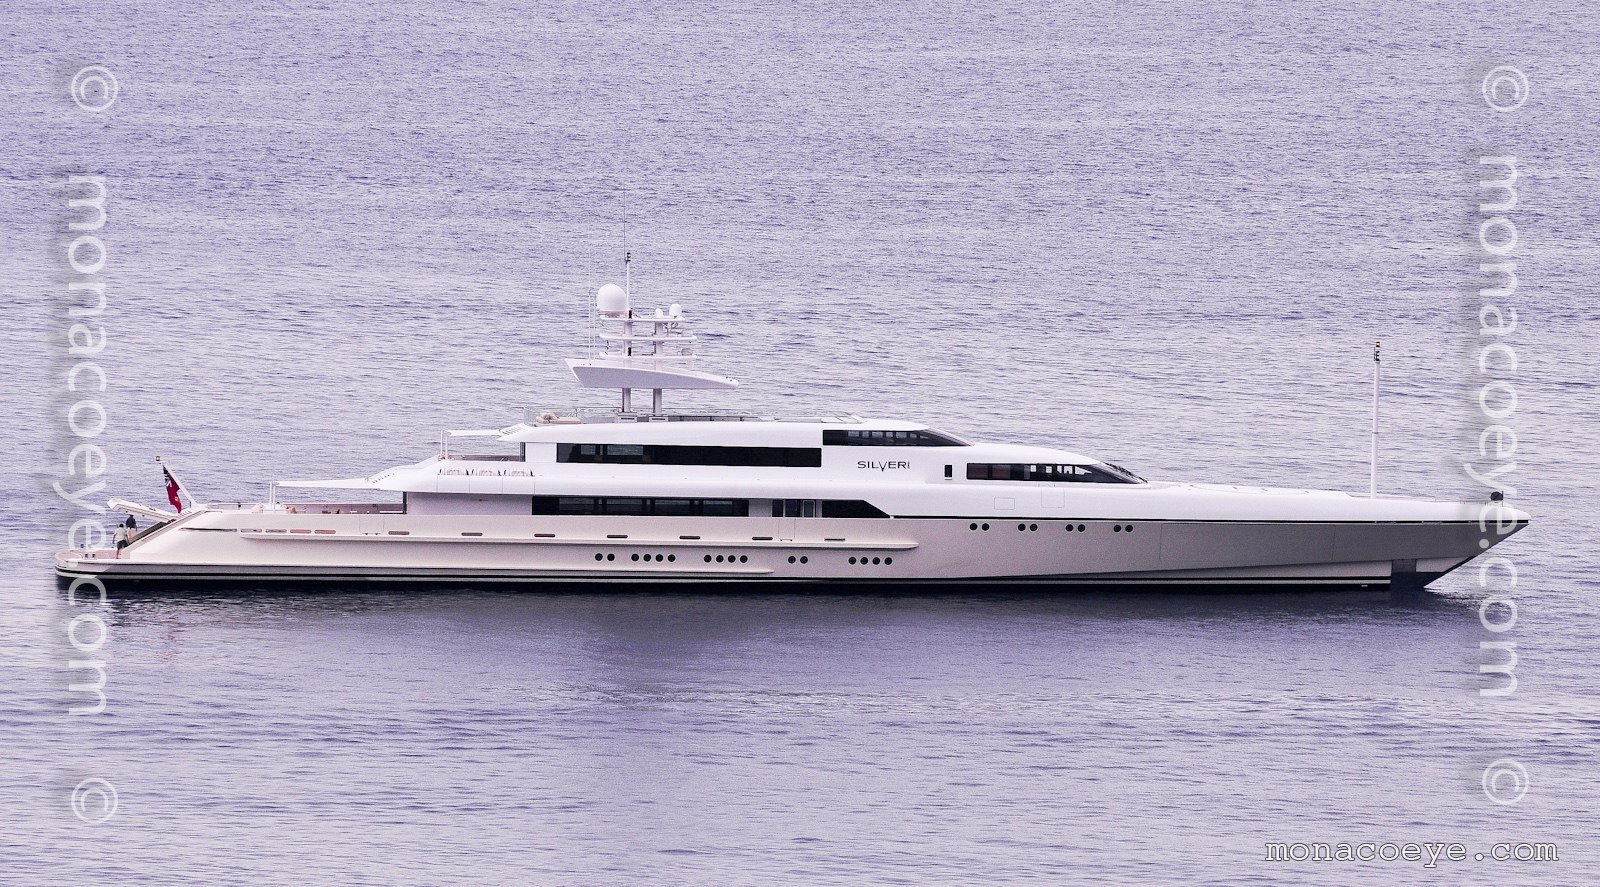 Silver Zwei, 2009 design from Hanseatic Marine and Espen Oeino. At the 2011 Monaco Grand Prix, sister to Rabdan.